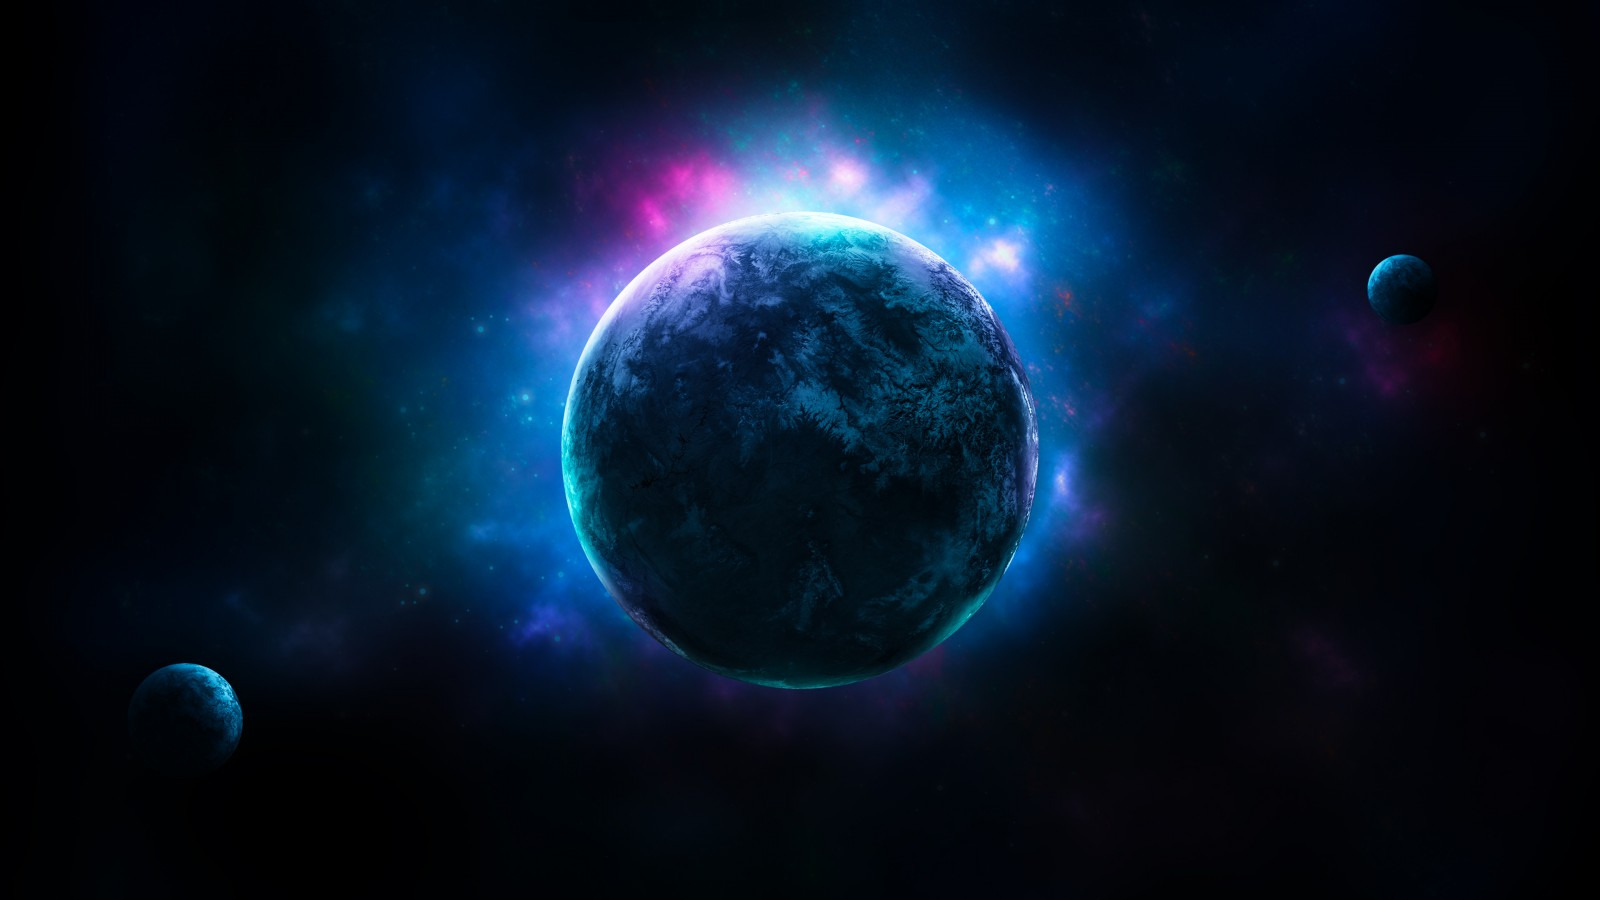 Earth 3d Wallpaper Android Planets 4k Wallpapers Hd Wallpapers Id 24978